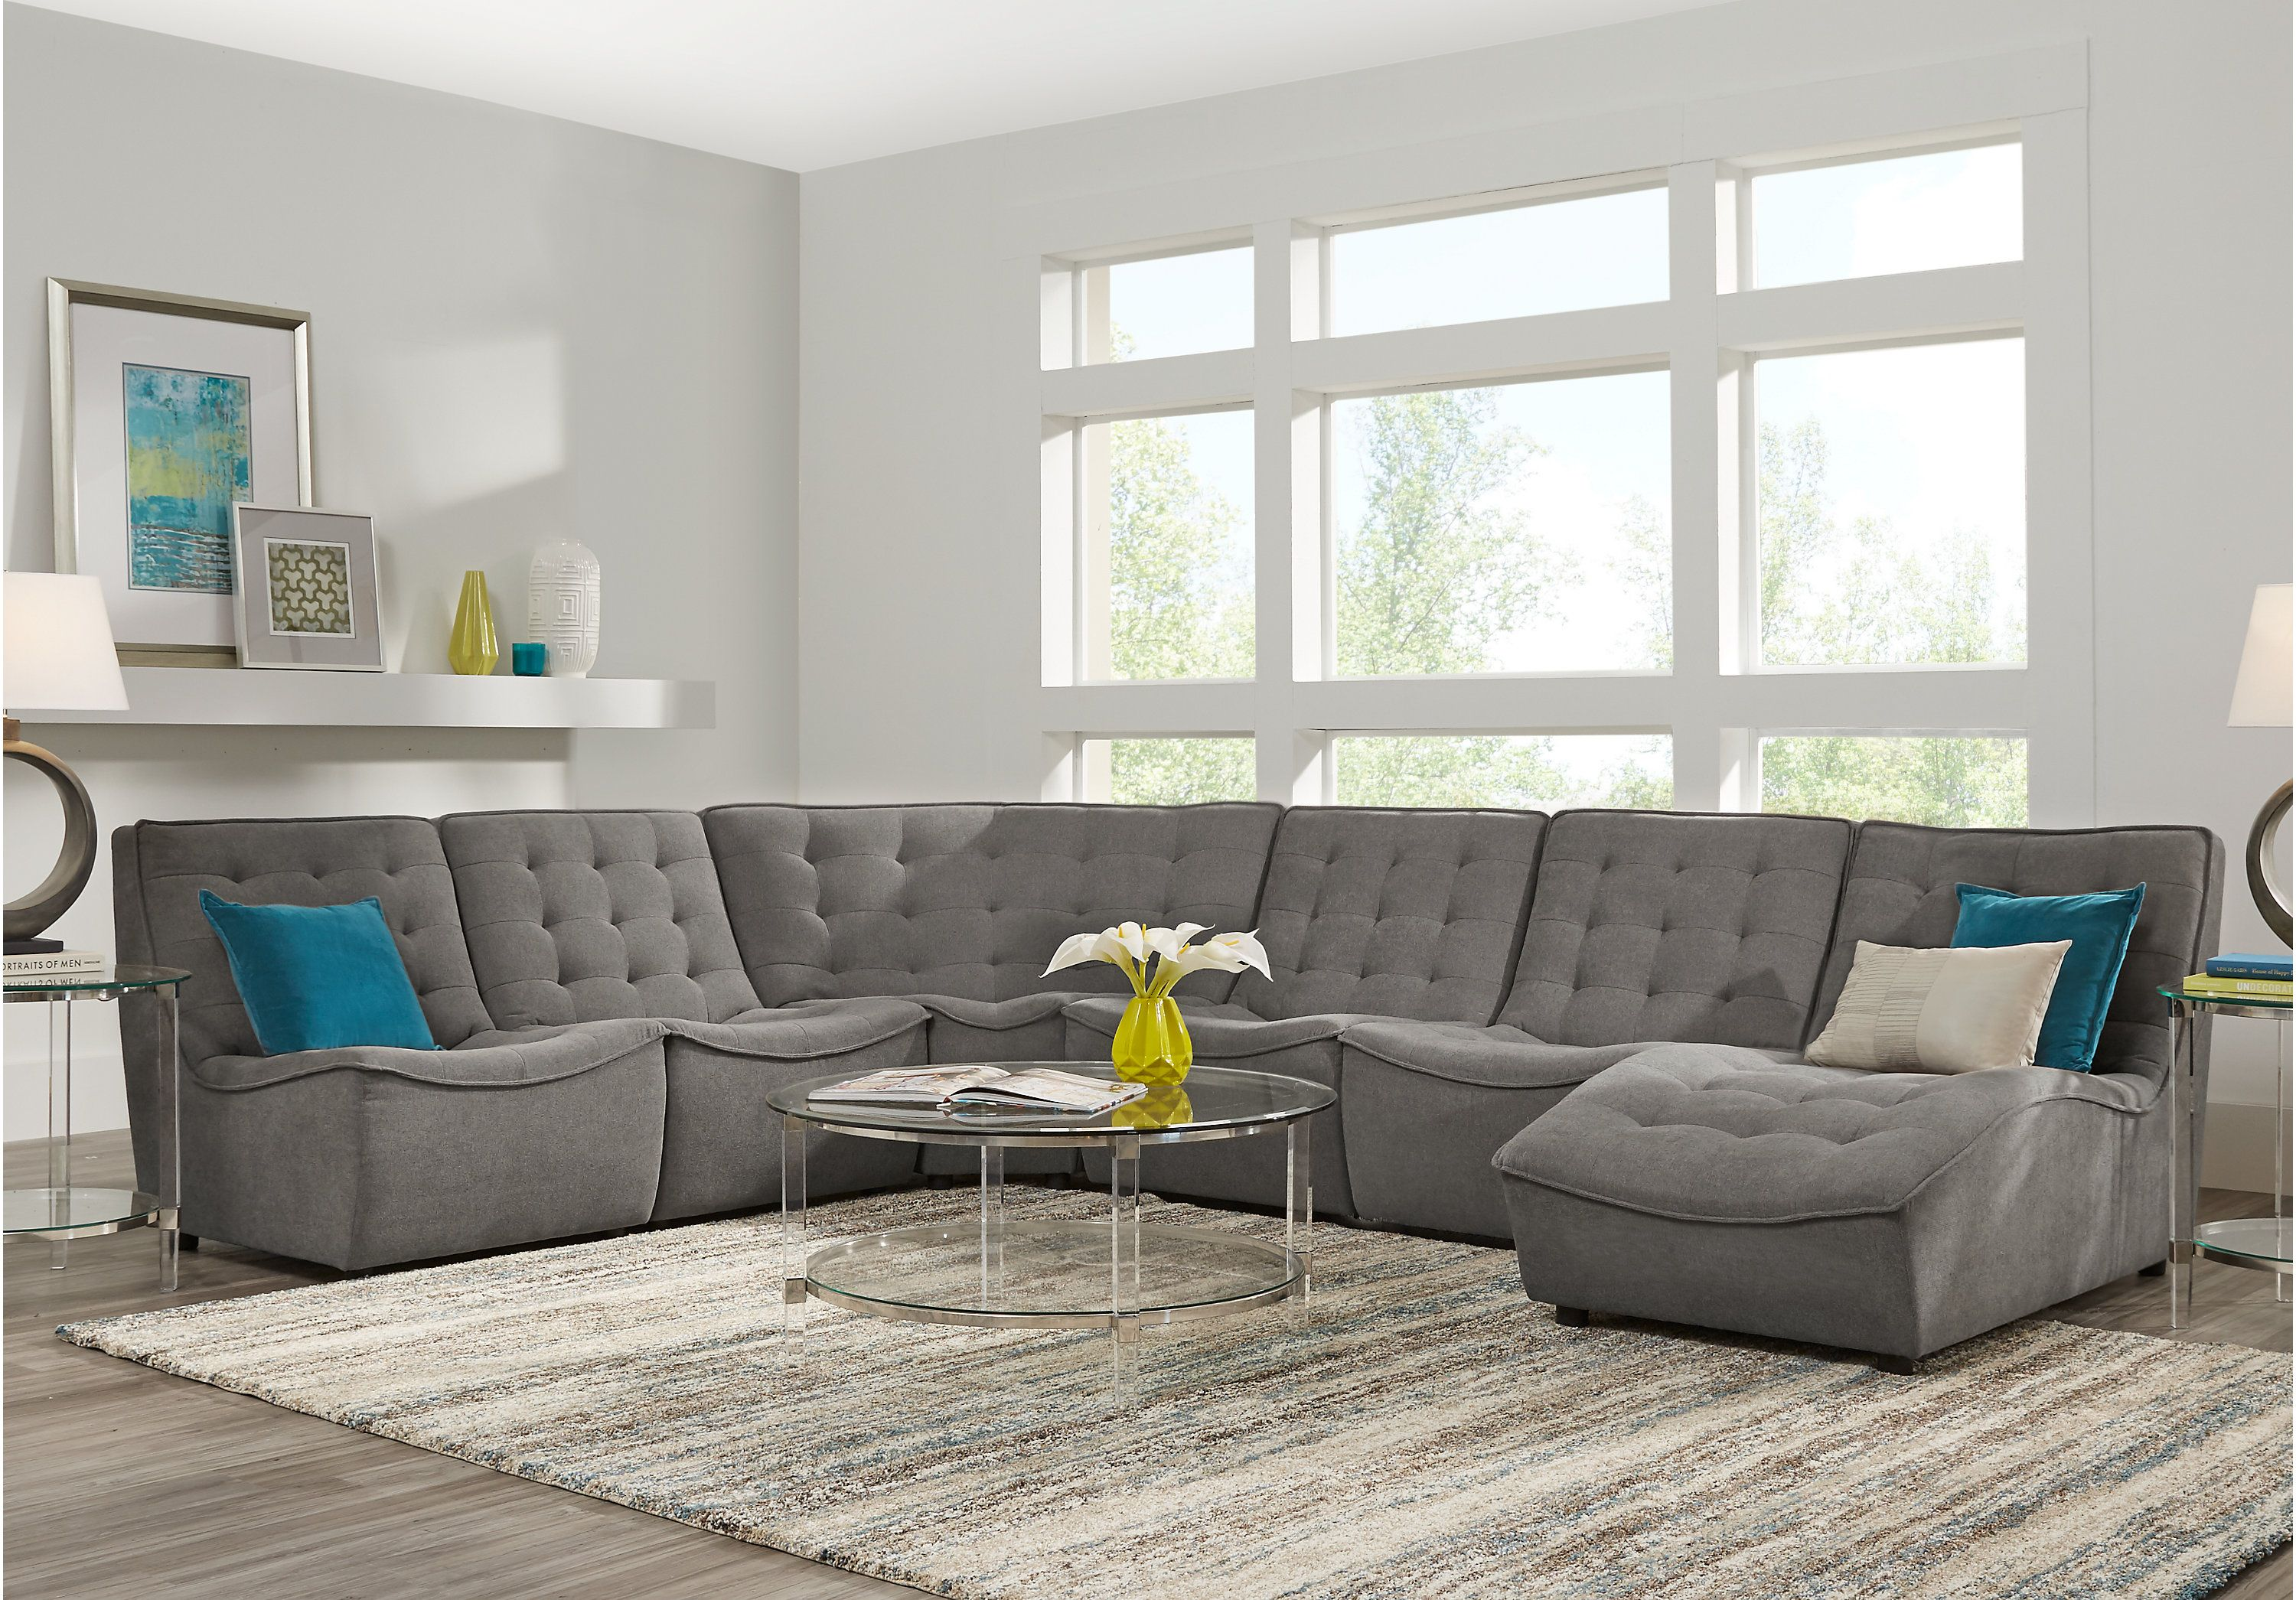 Nathan Square Gray 6 Pc Sectional Living Room Sets Gray Living Room Sectional Living Room Sets Furniture Living Room Sets